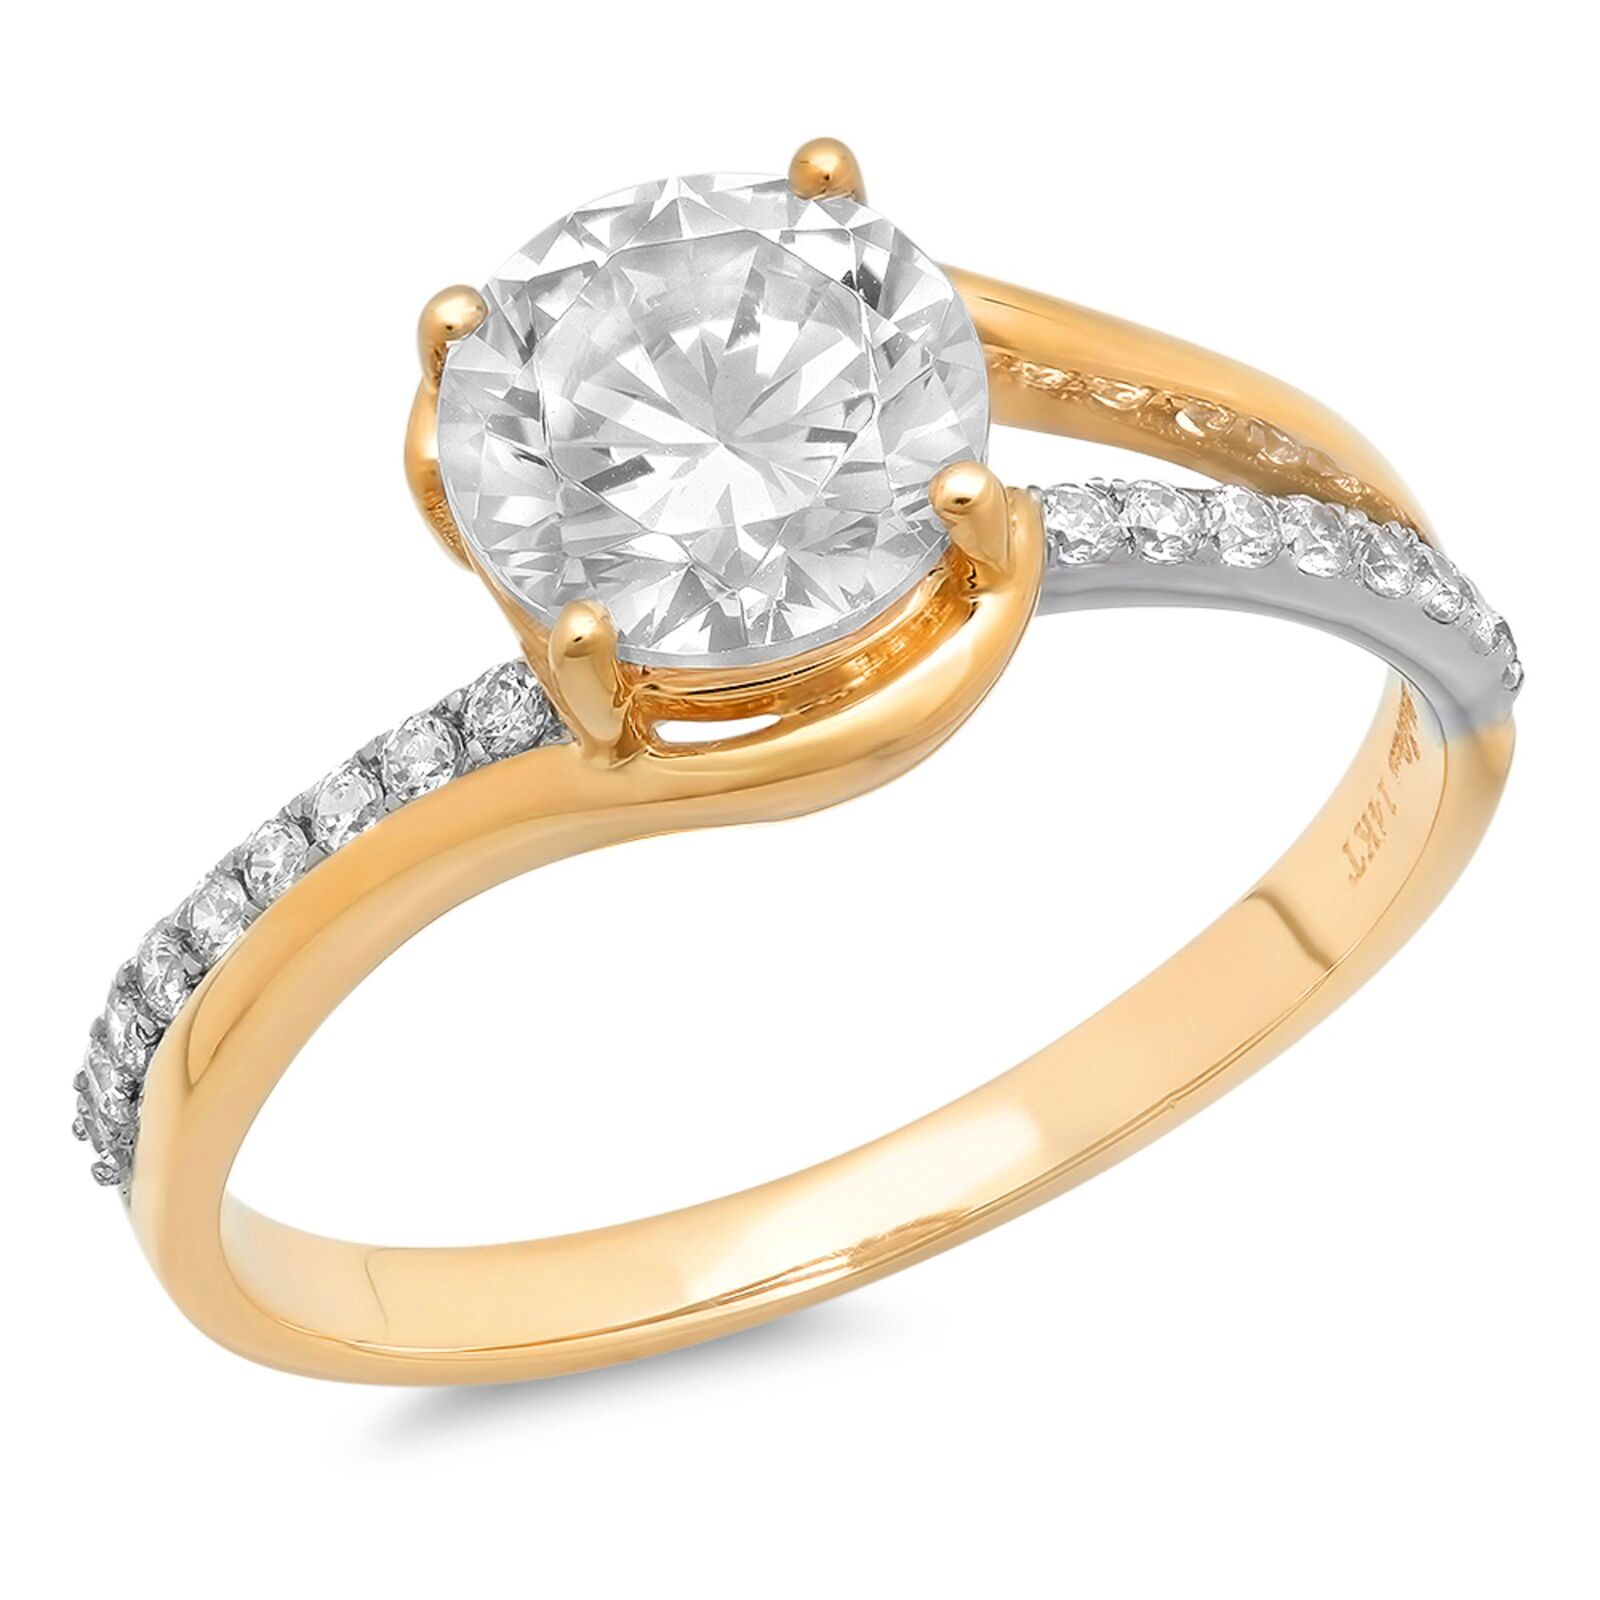 2.13ct Round Cut Wedding Bridal Engagement Anniversary Ring 14k Two-Tone gold